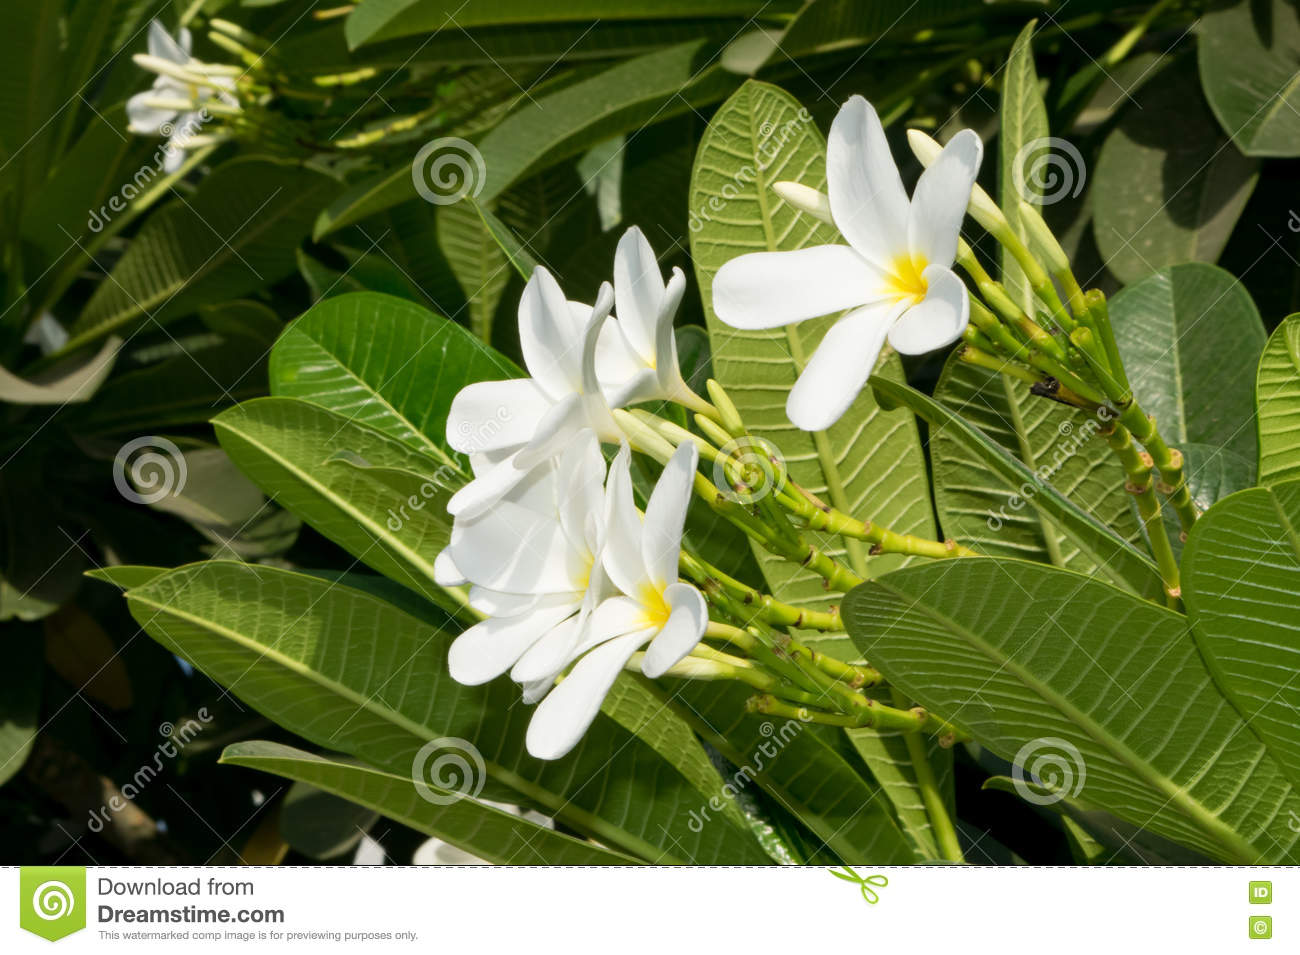 Plumeria flowers popularly known as Champa in India